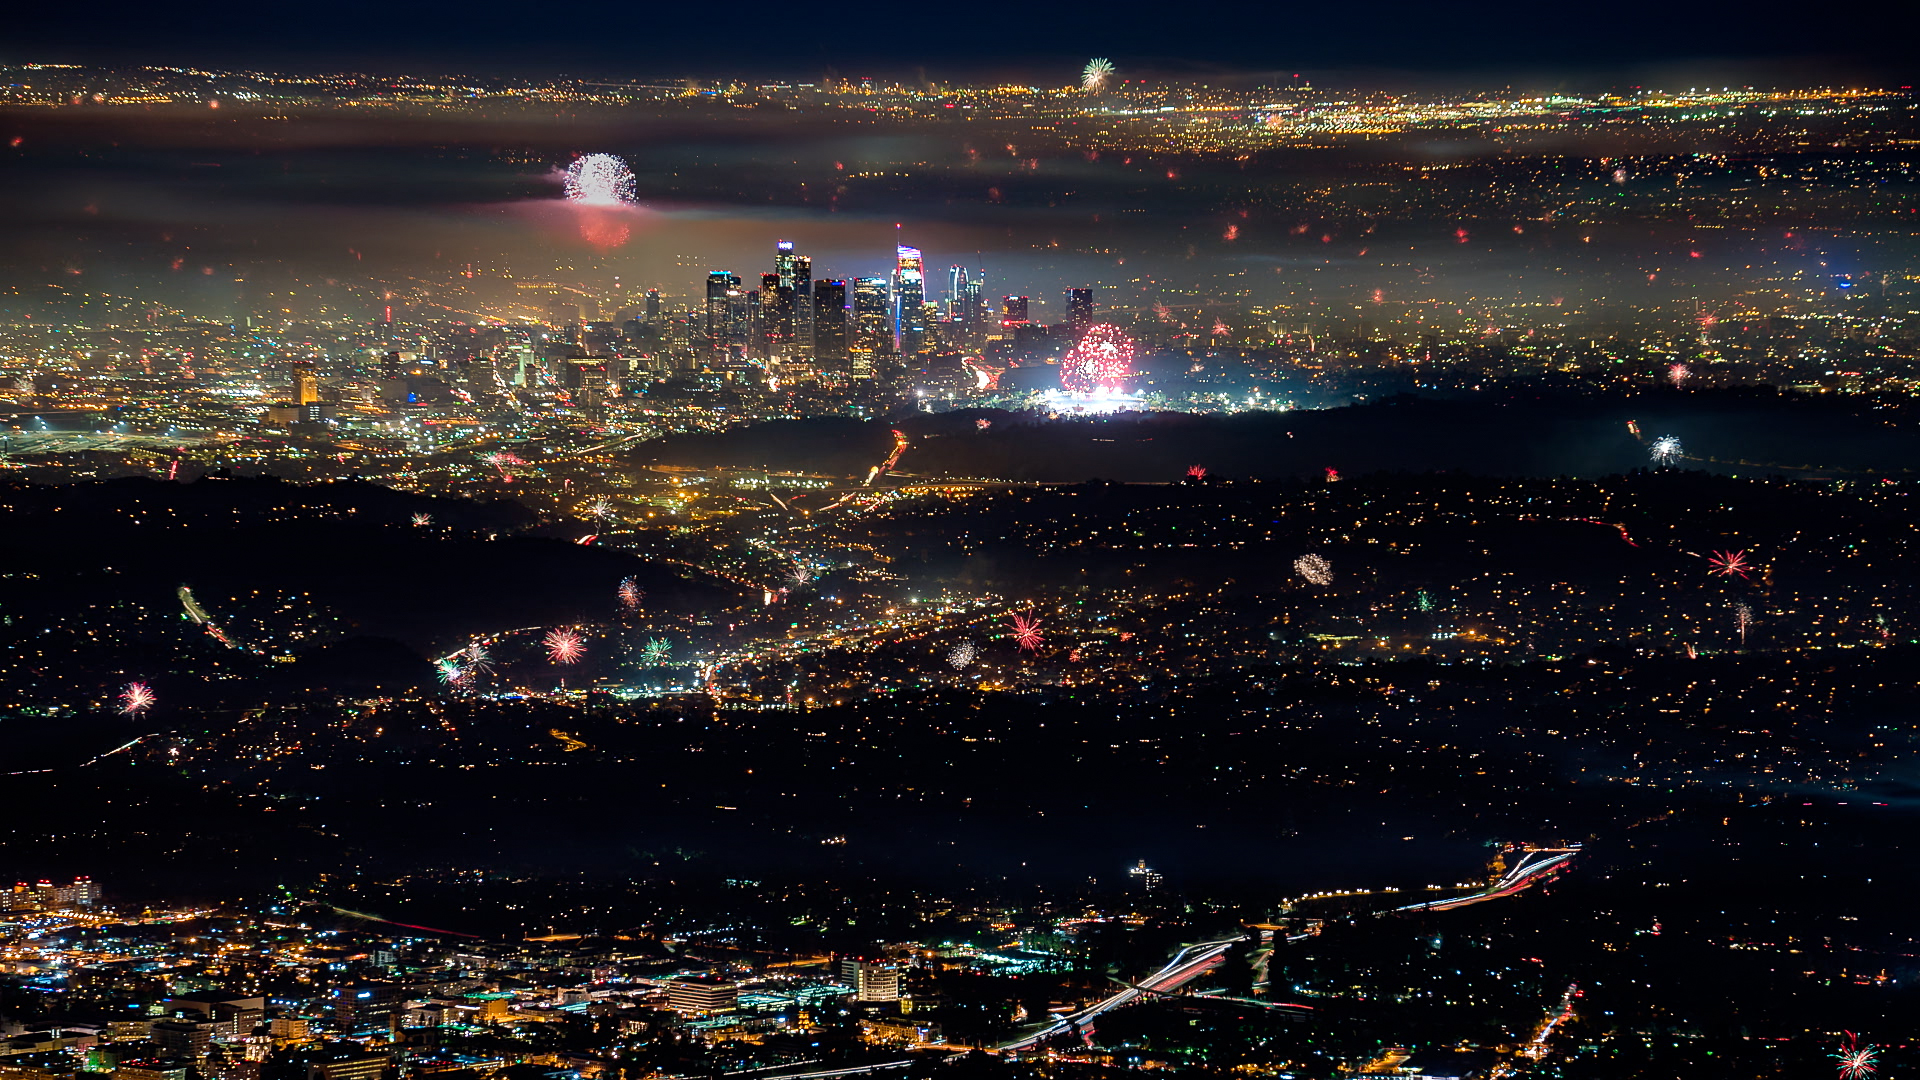 A composite image of fireworks over Los Angeles on July 4, 2017.